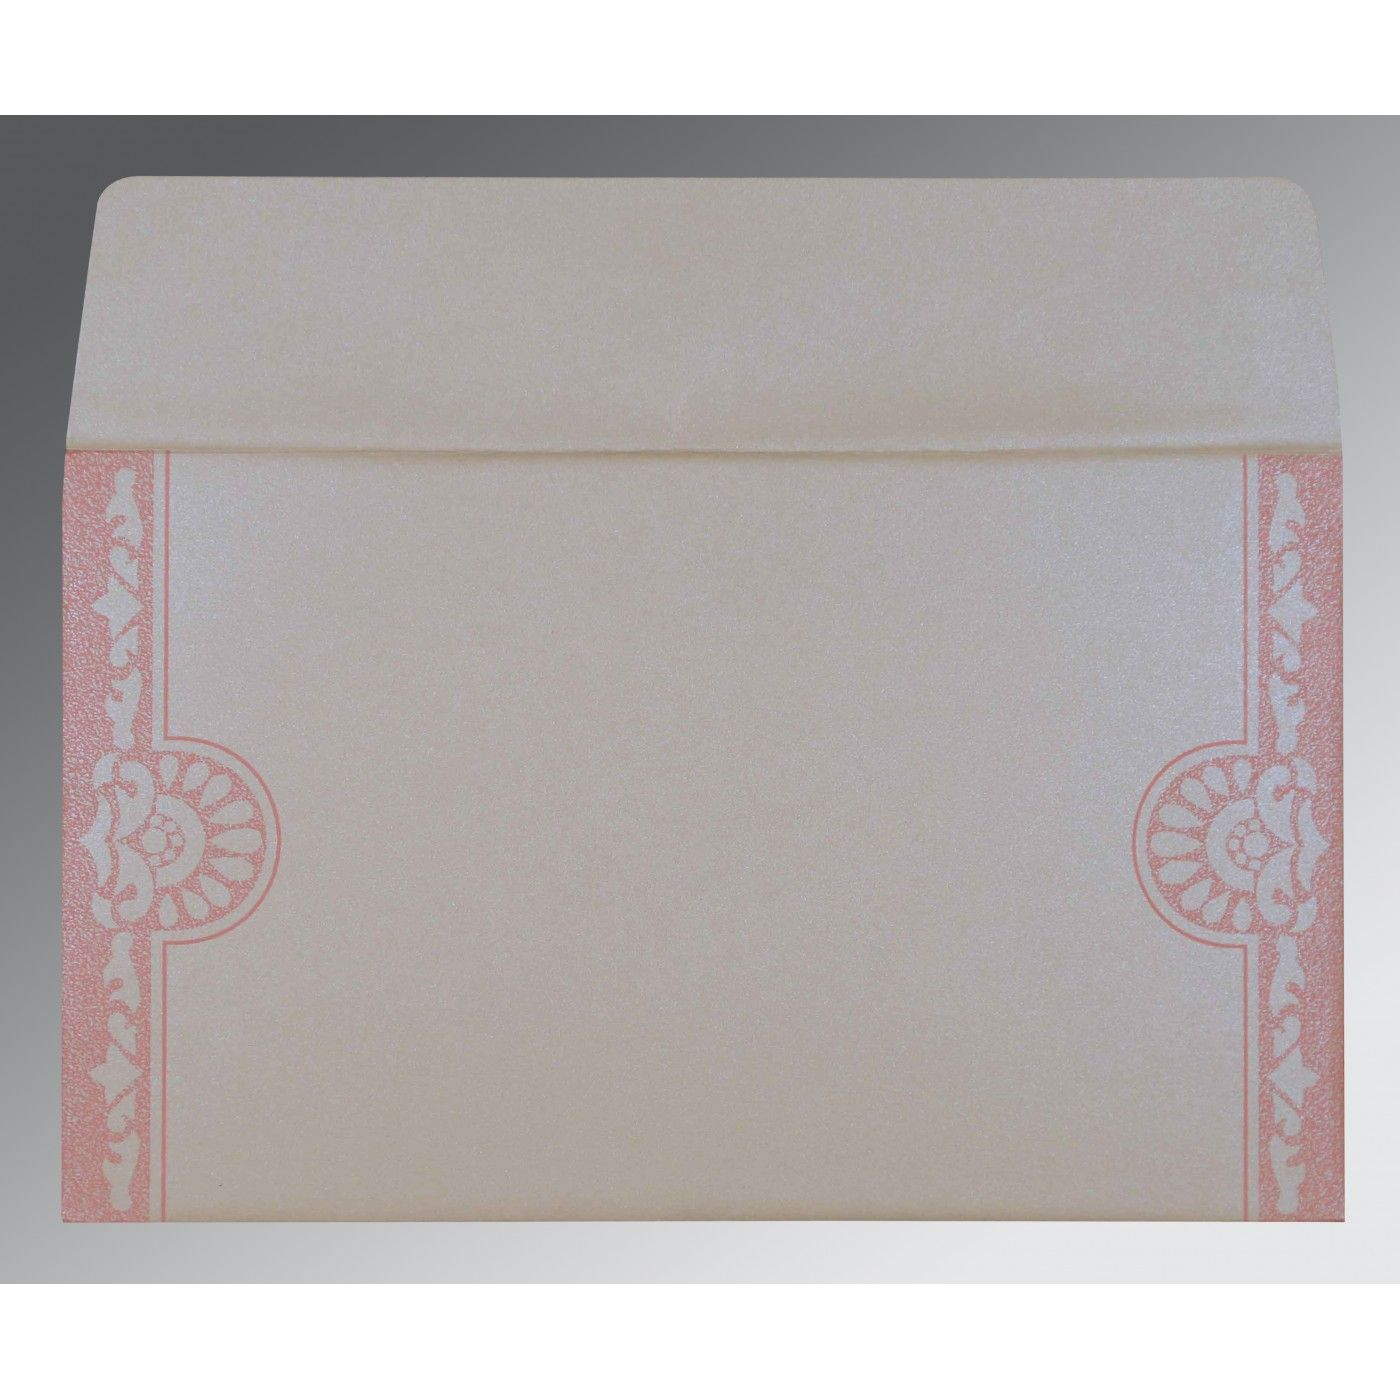 OFF-WHITE PINK SHIMMERY FLORAL THEMED - SCREEN PRINTED WEDDING CARD : CI-8227M - IndianWeddingCards